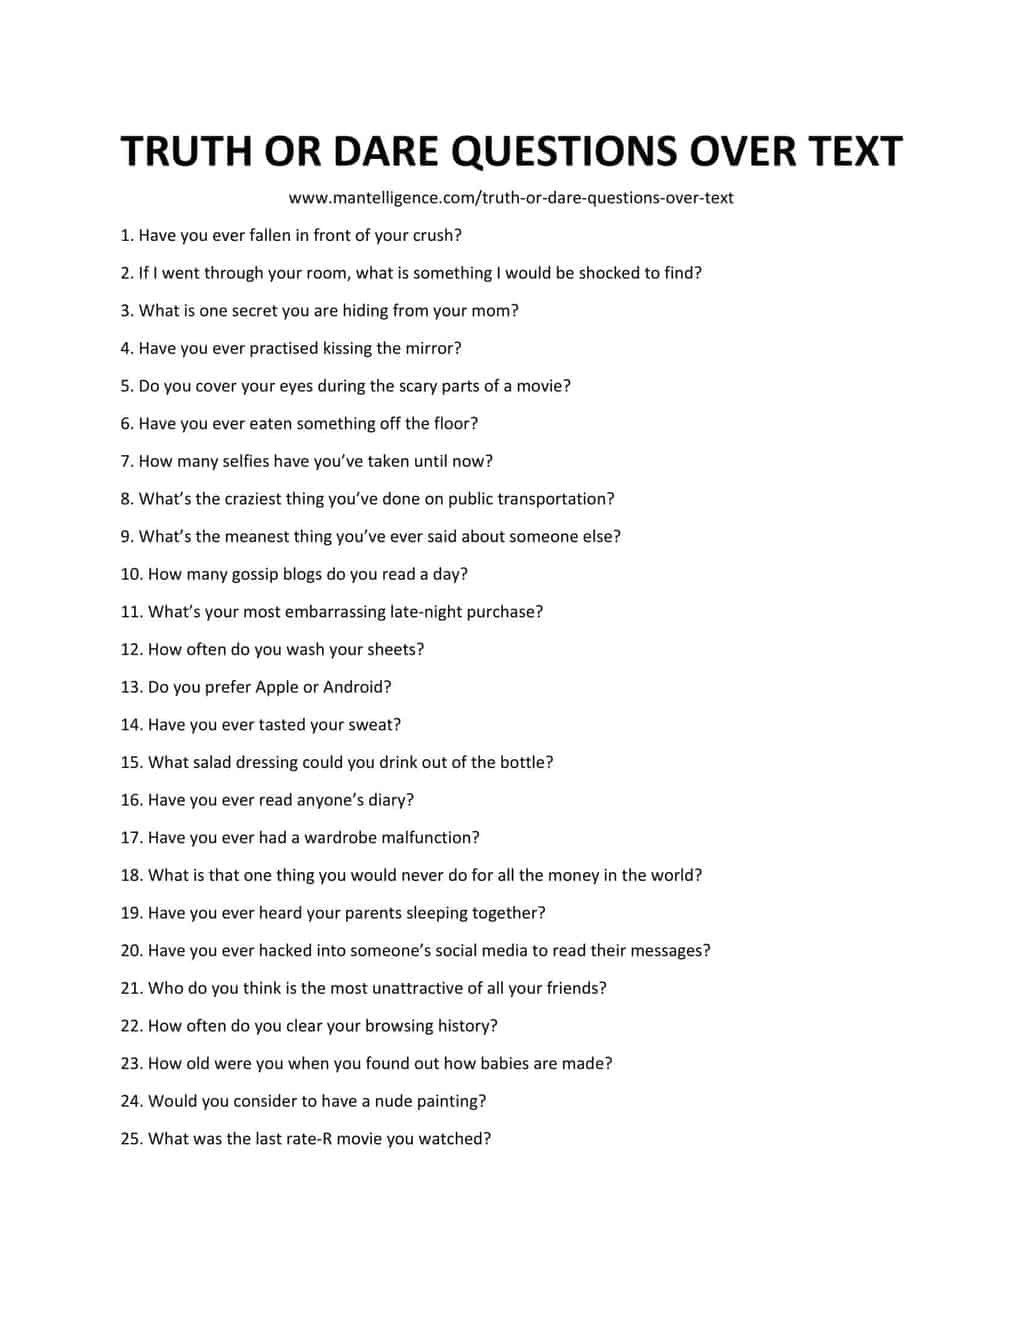 Downloadable and Printable List of Truth or Dare Questions Over Text